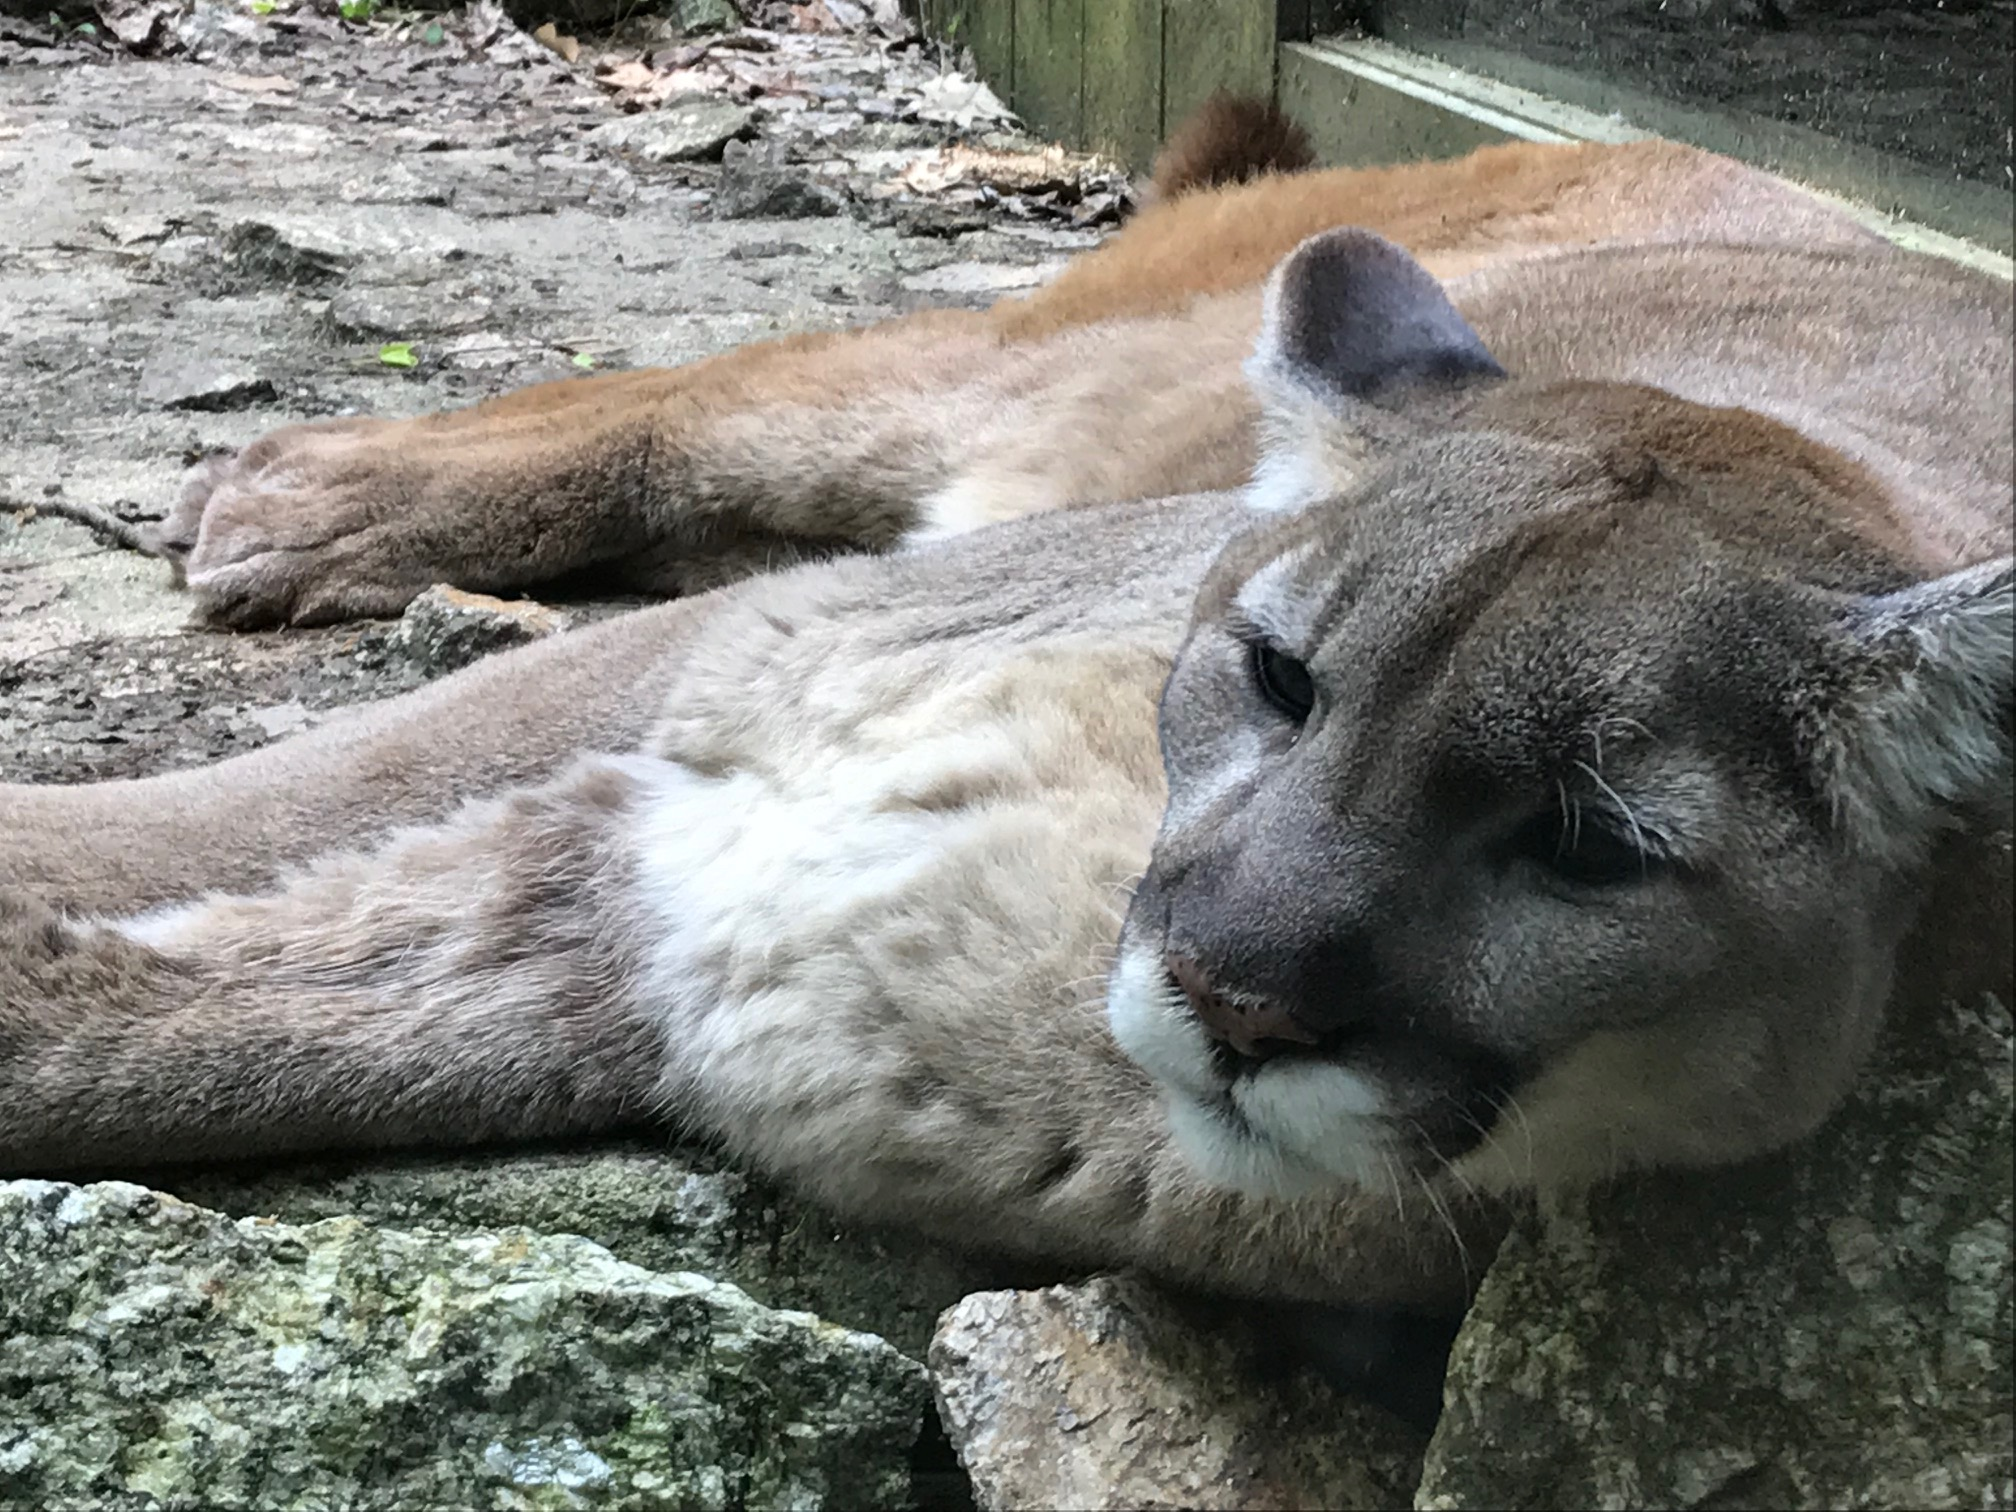 The majestic Mountain Lion